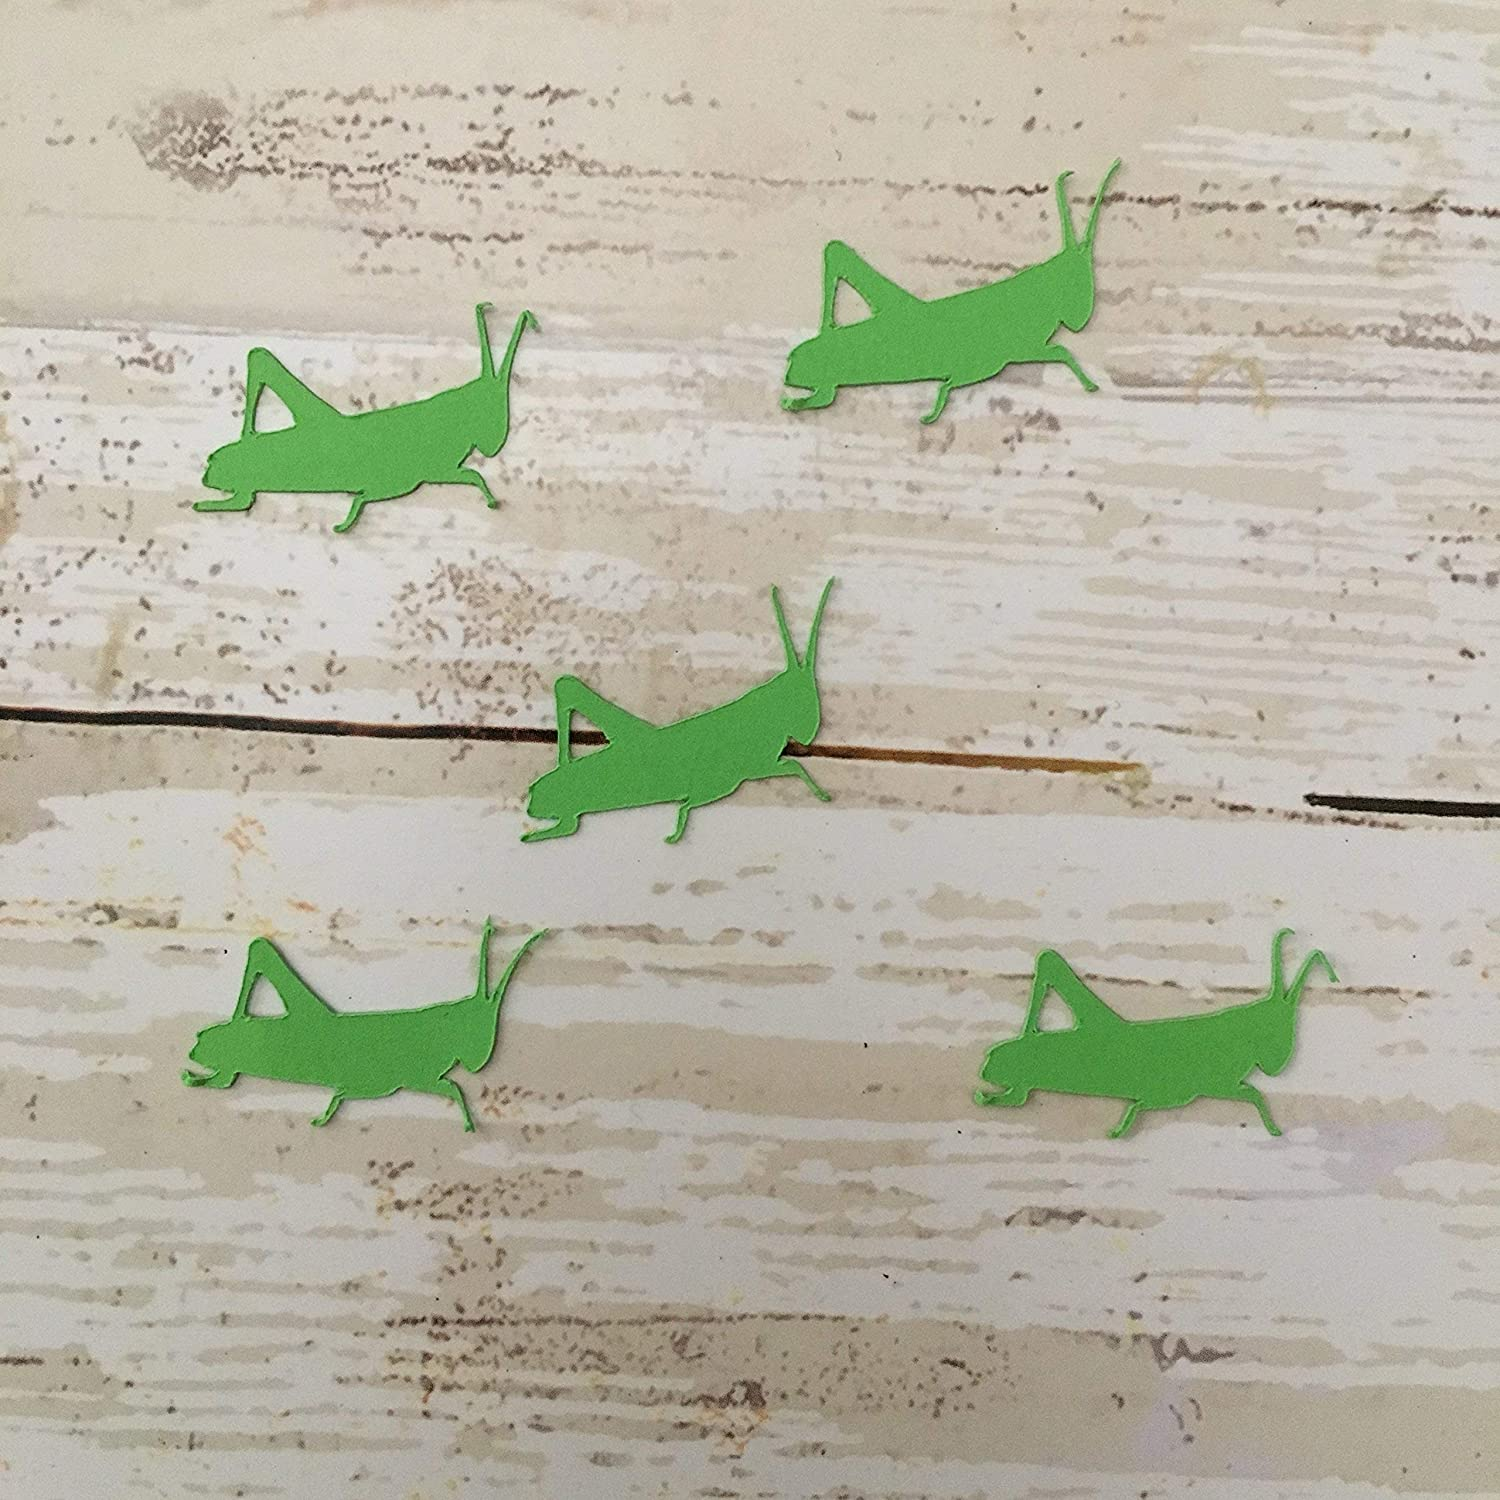 Grasshopper Confetti Bug Decorations Insect New Shipping Free Shipping Party S Theme Mail order cheap